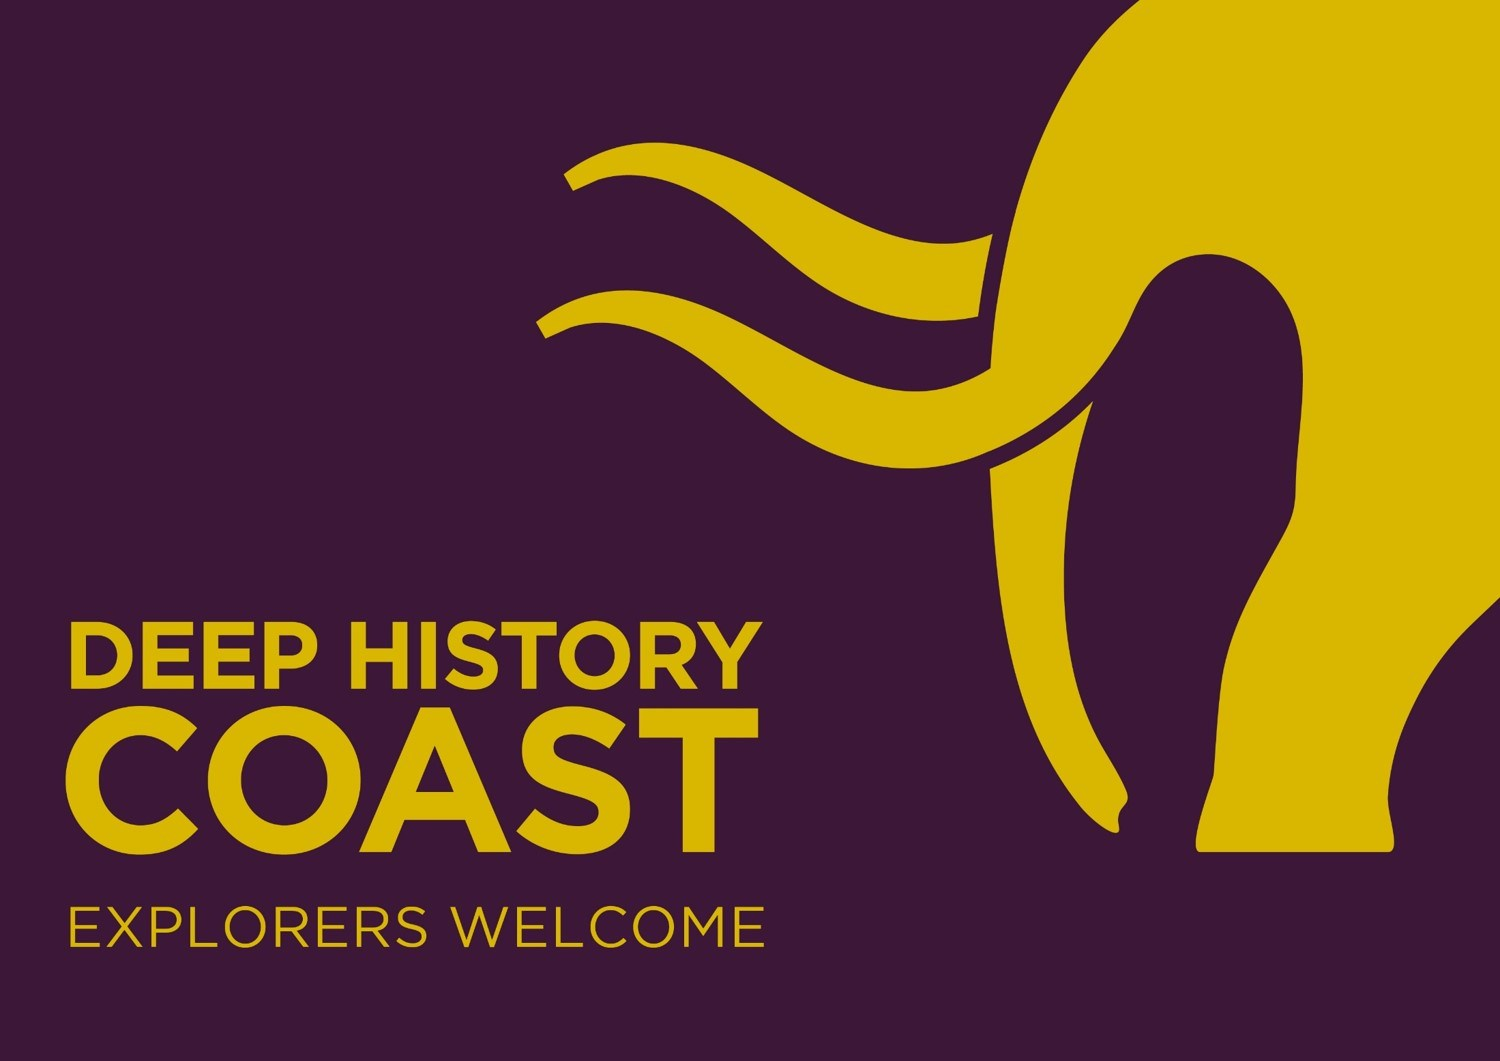 Discover more about the Deep History Coast